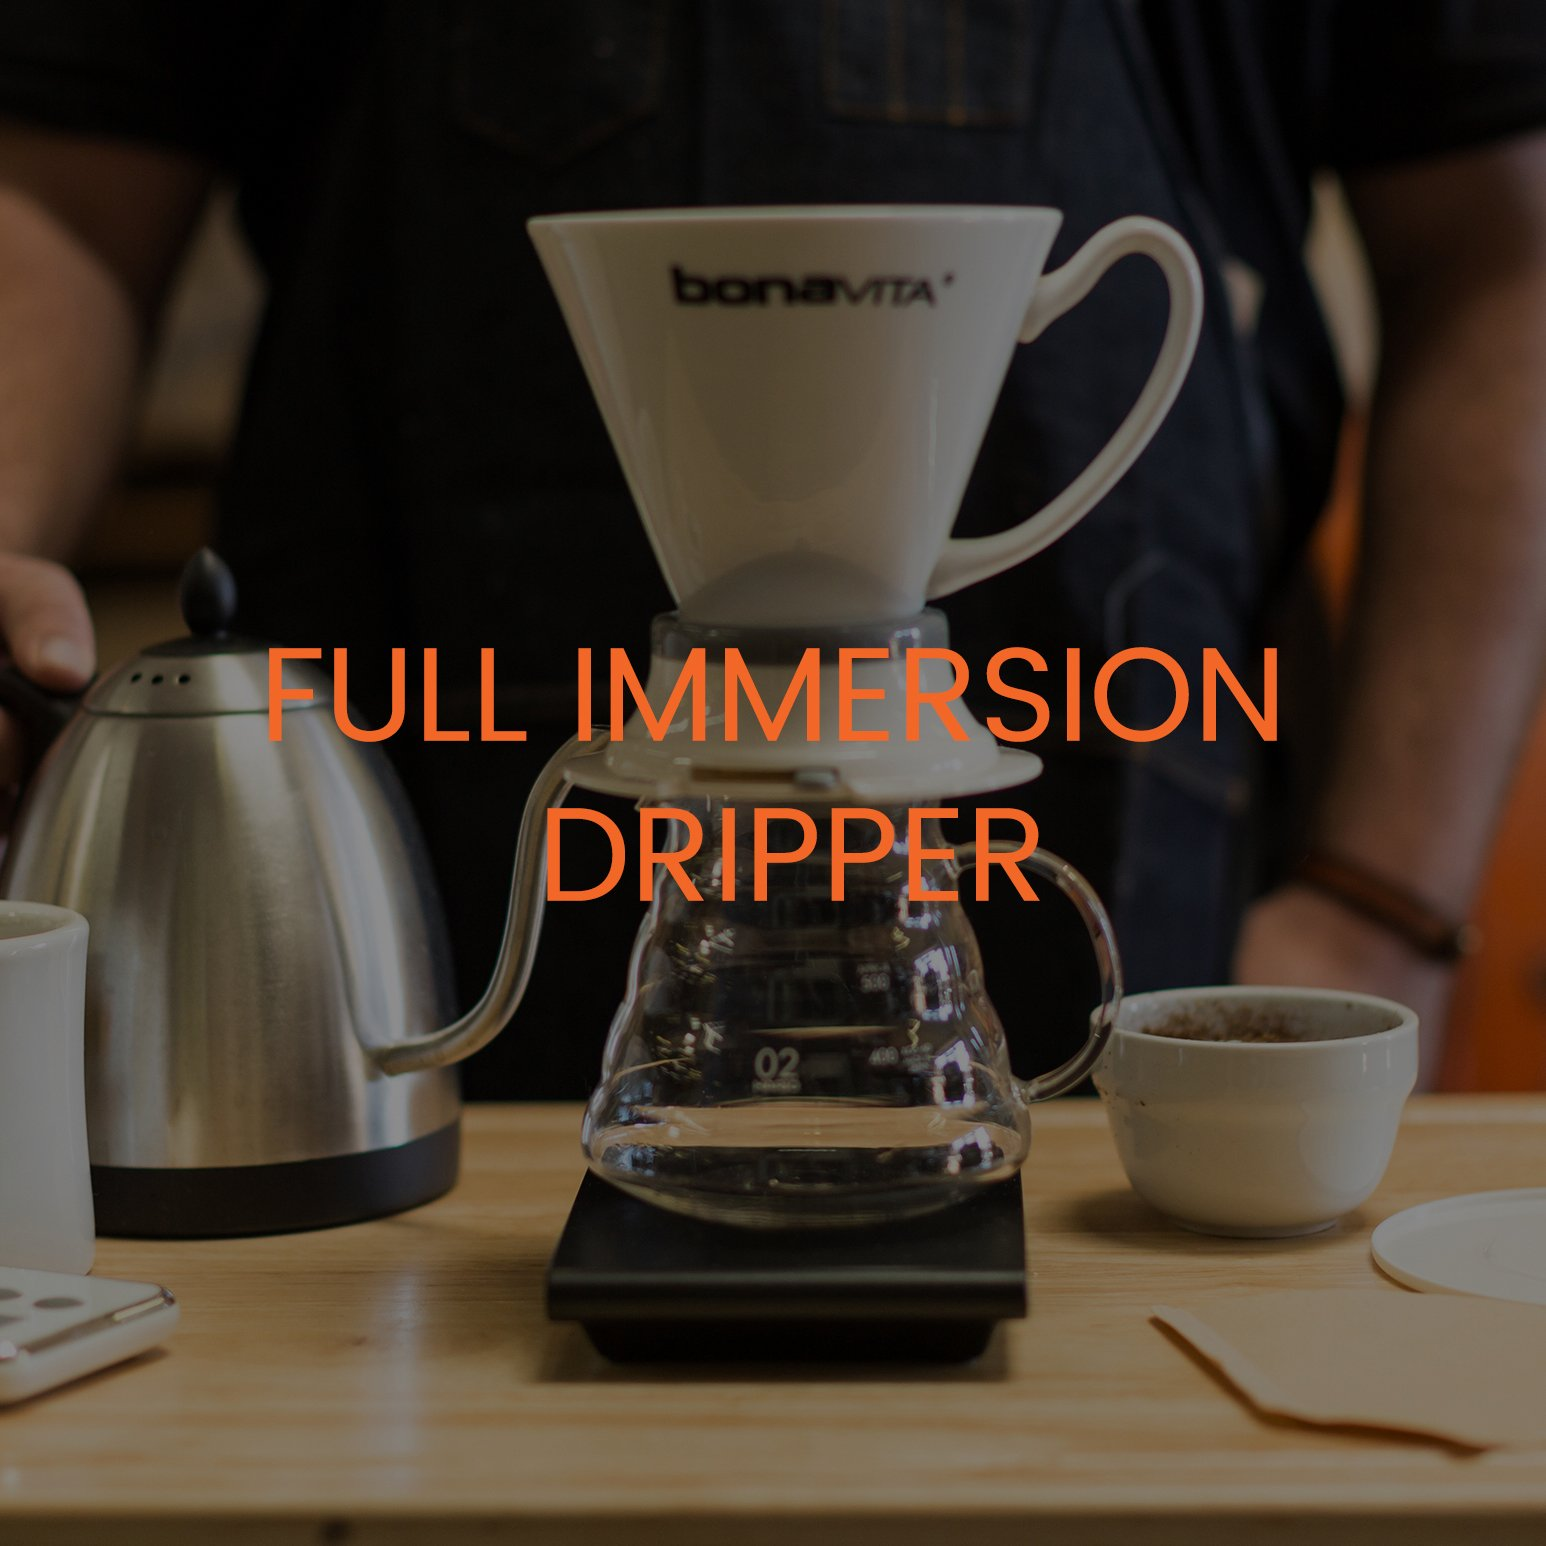 FULL IMMERSION DRIPPER